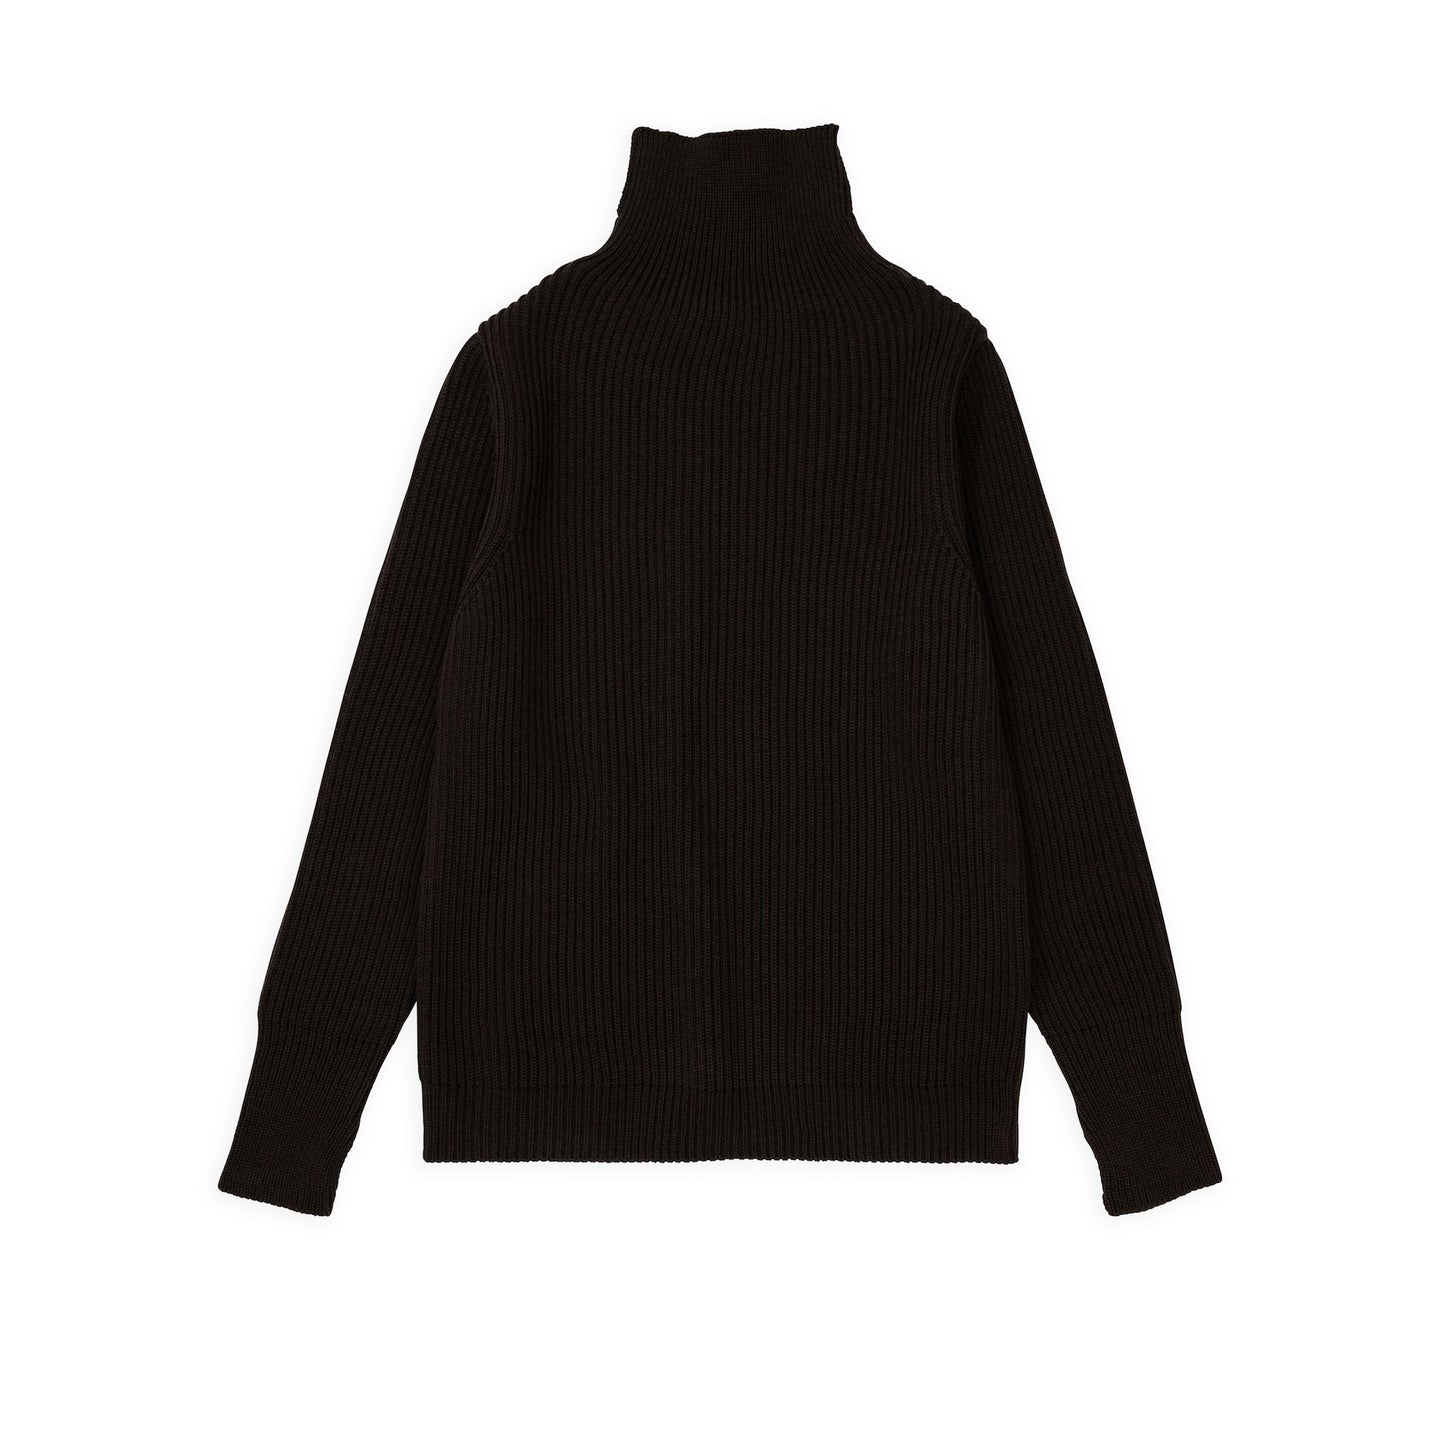 ANDERSEN-ANDERSEN Navy Turtleneck - Hunting Green